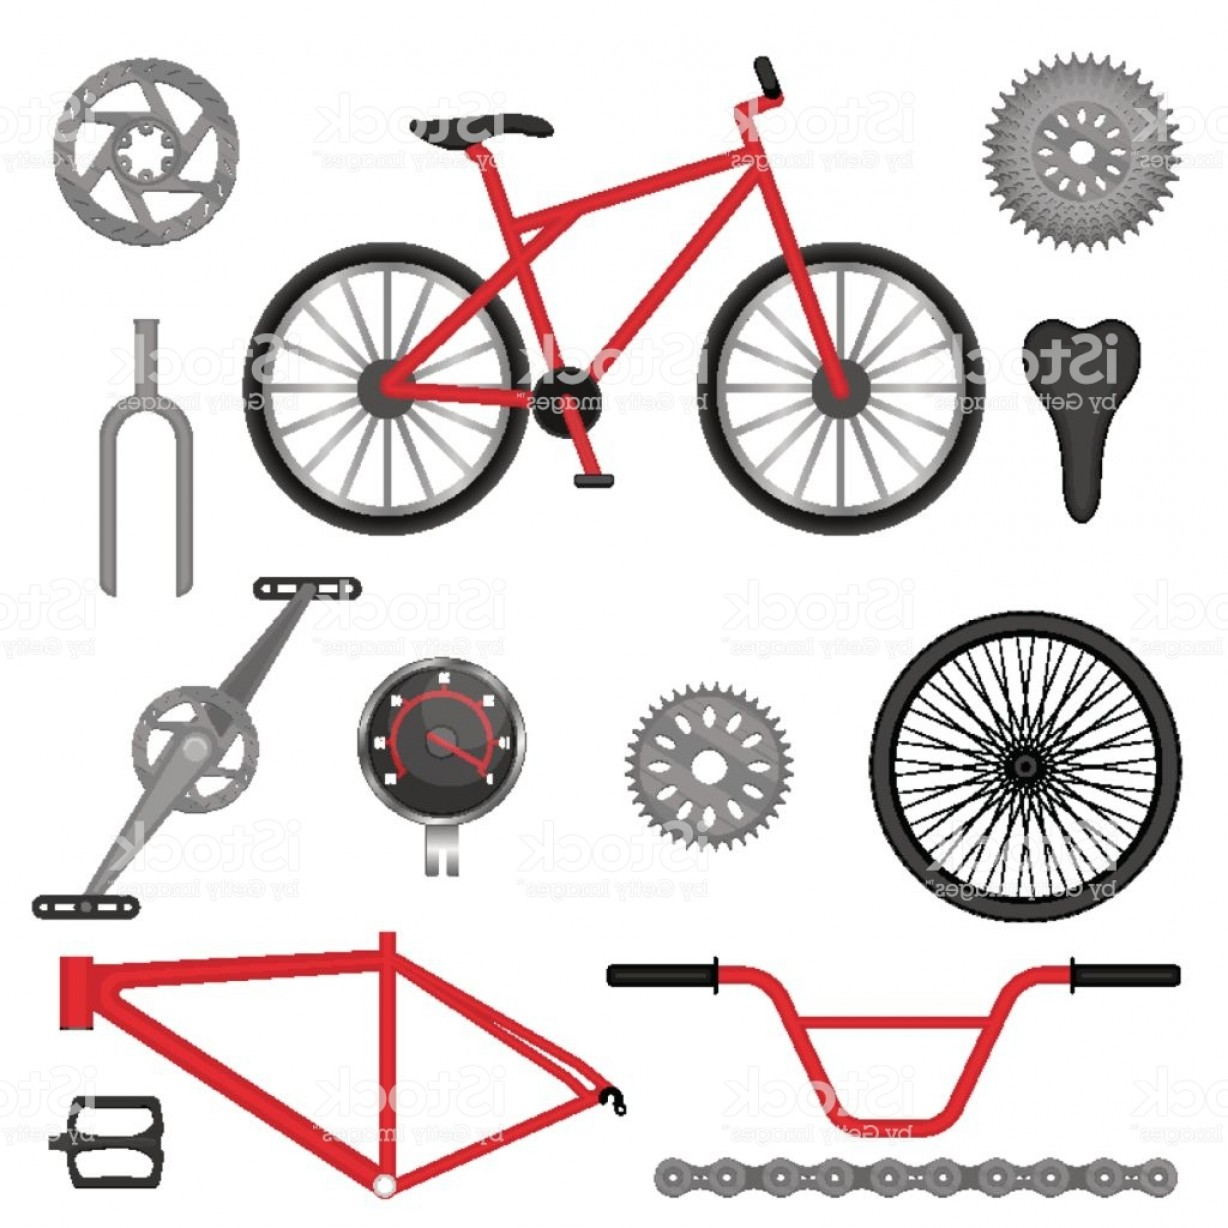 BMX Bike Tire Vector: Parts Of Bmx Bike Off Road Sport Bicycle Used For Racing Gm